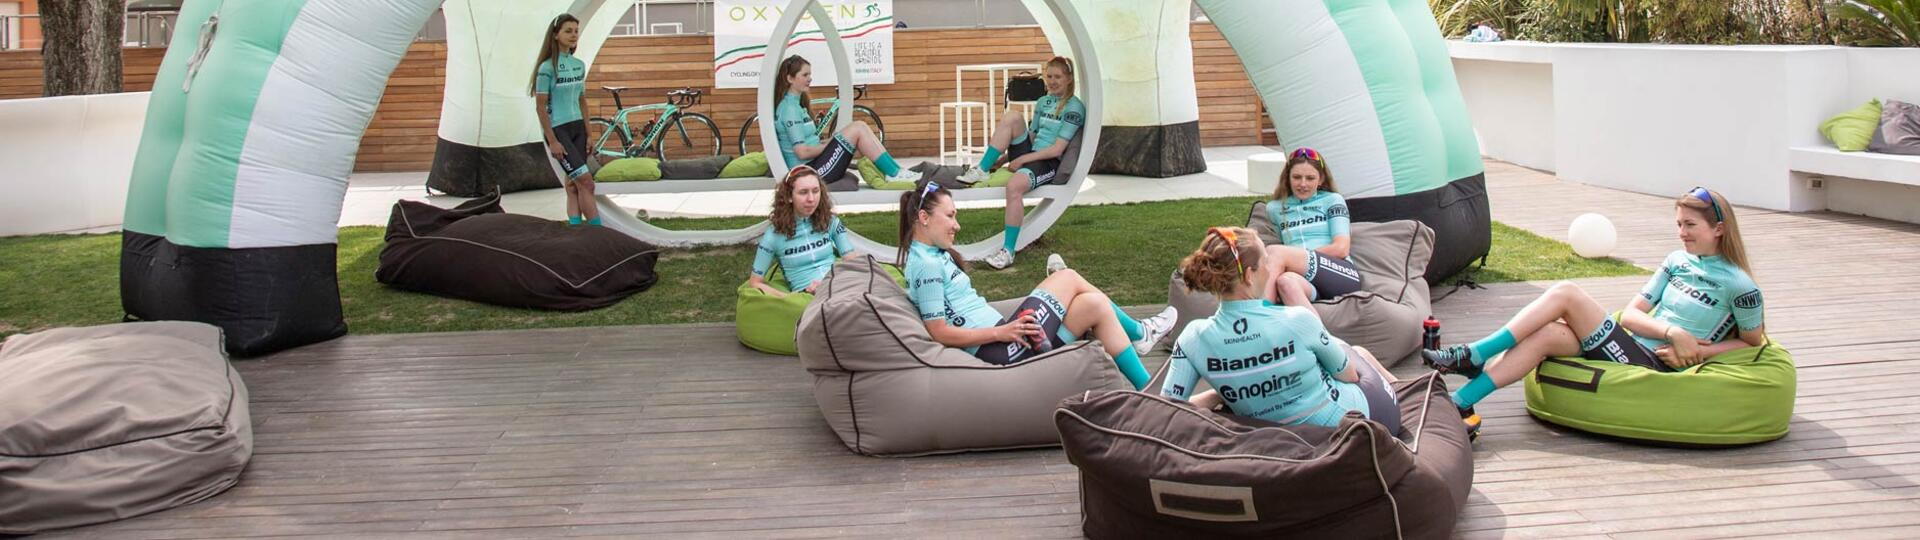 cycling.oxygenhotel it offerta-bike-tour-alla-gola-del-furlo 012